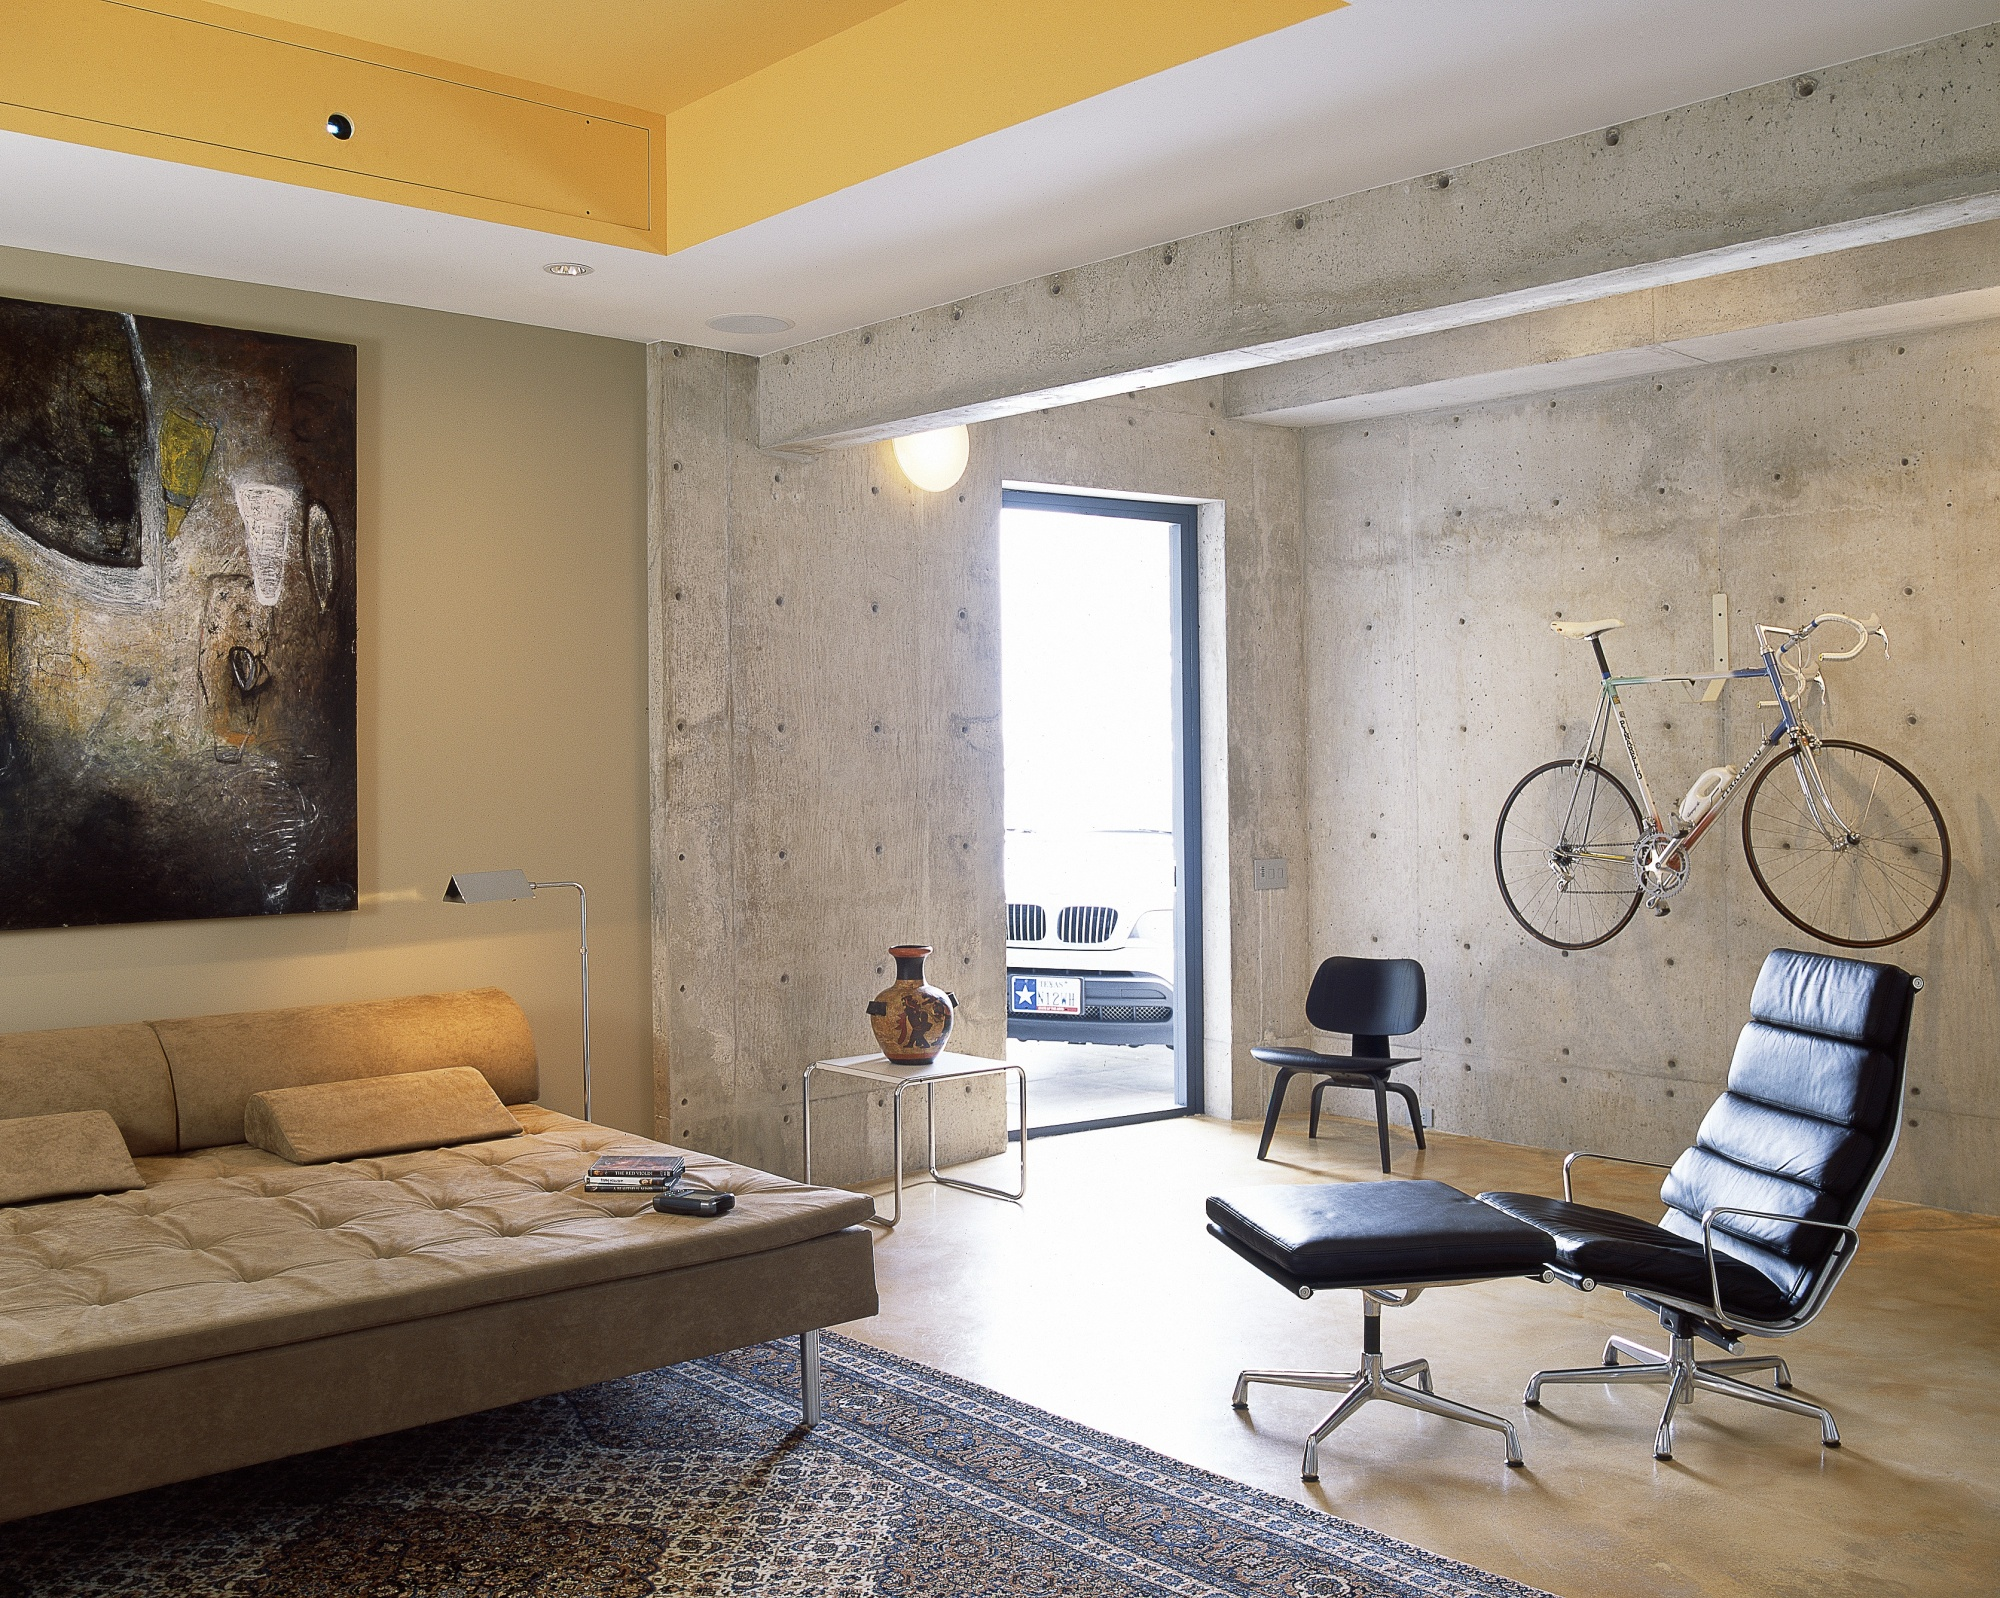 Concrete volume provides strength to this relaxing space.